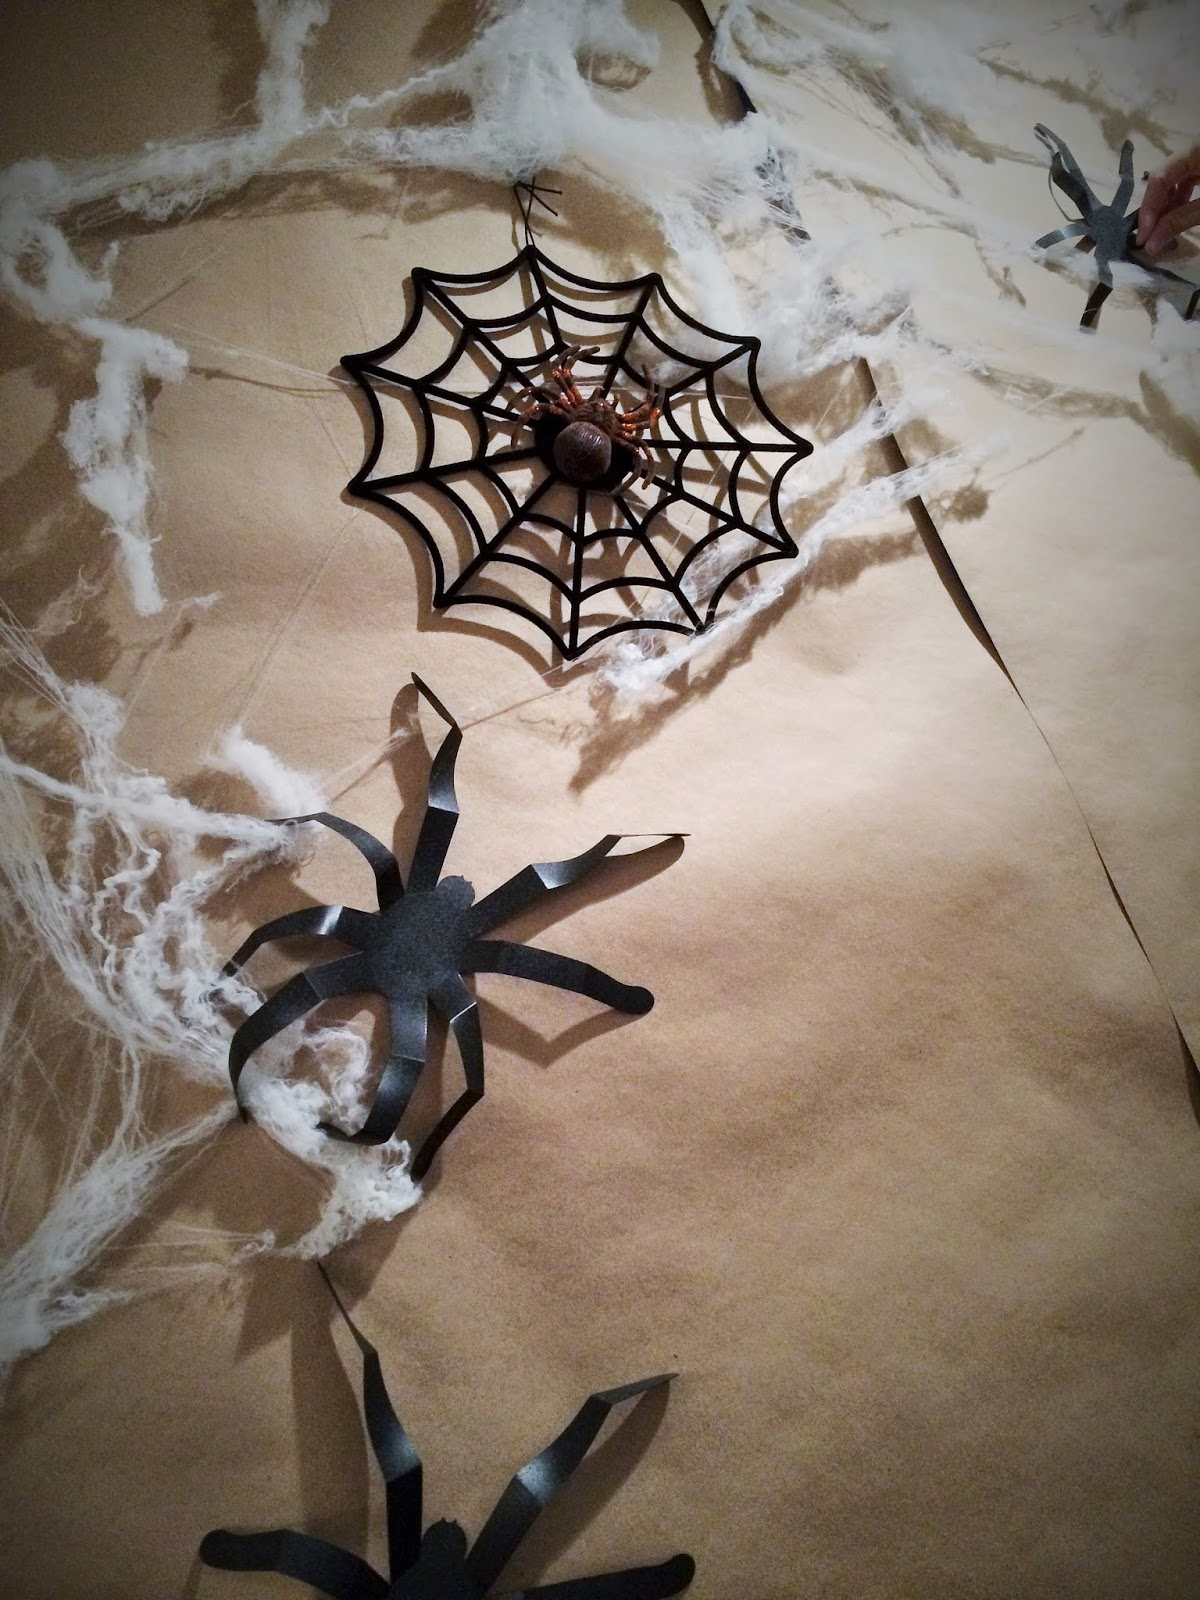 20 Spiders Halloween Decorations Ideas  Decoration Love